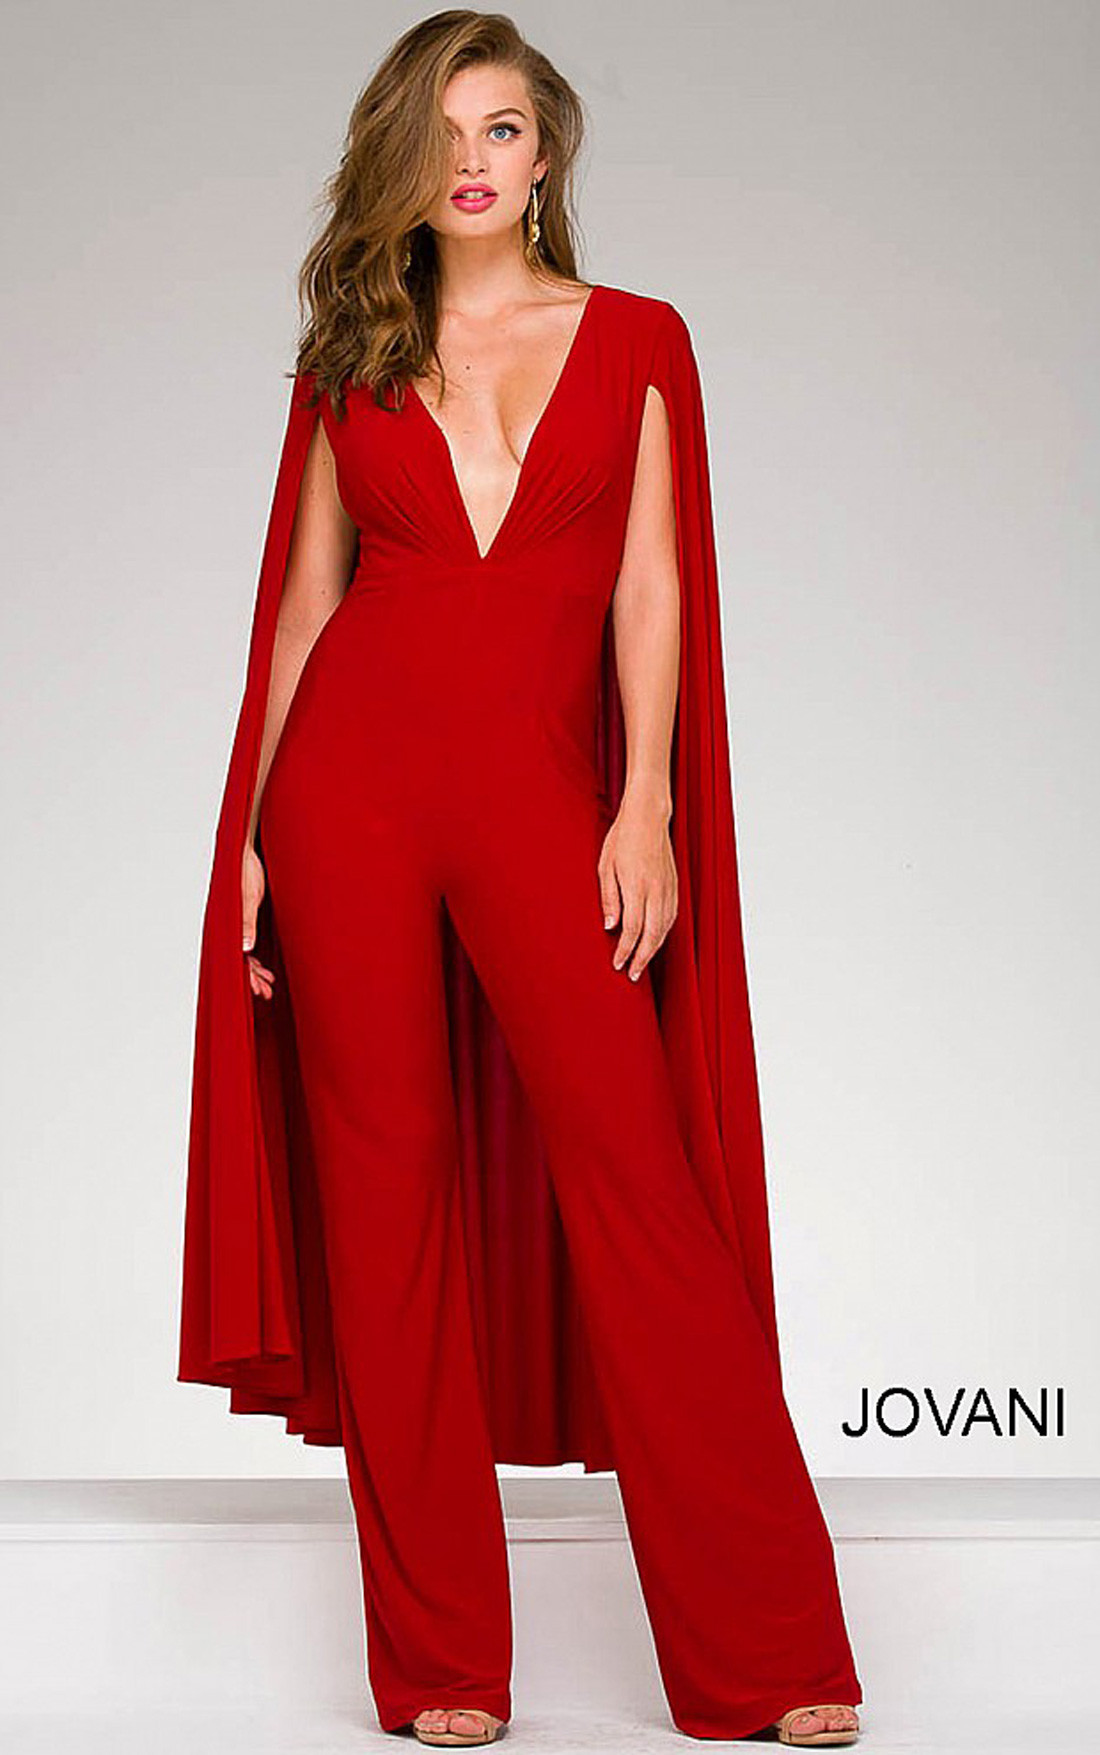 Jovani Dresses | Womens Red Deep Plunging Neckline Jersey Cape ...